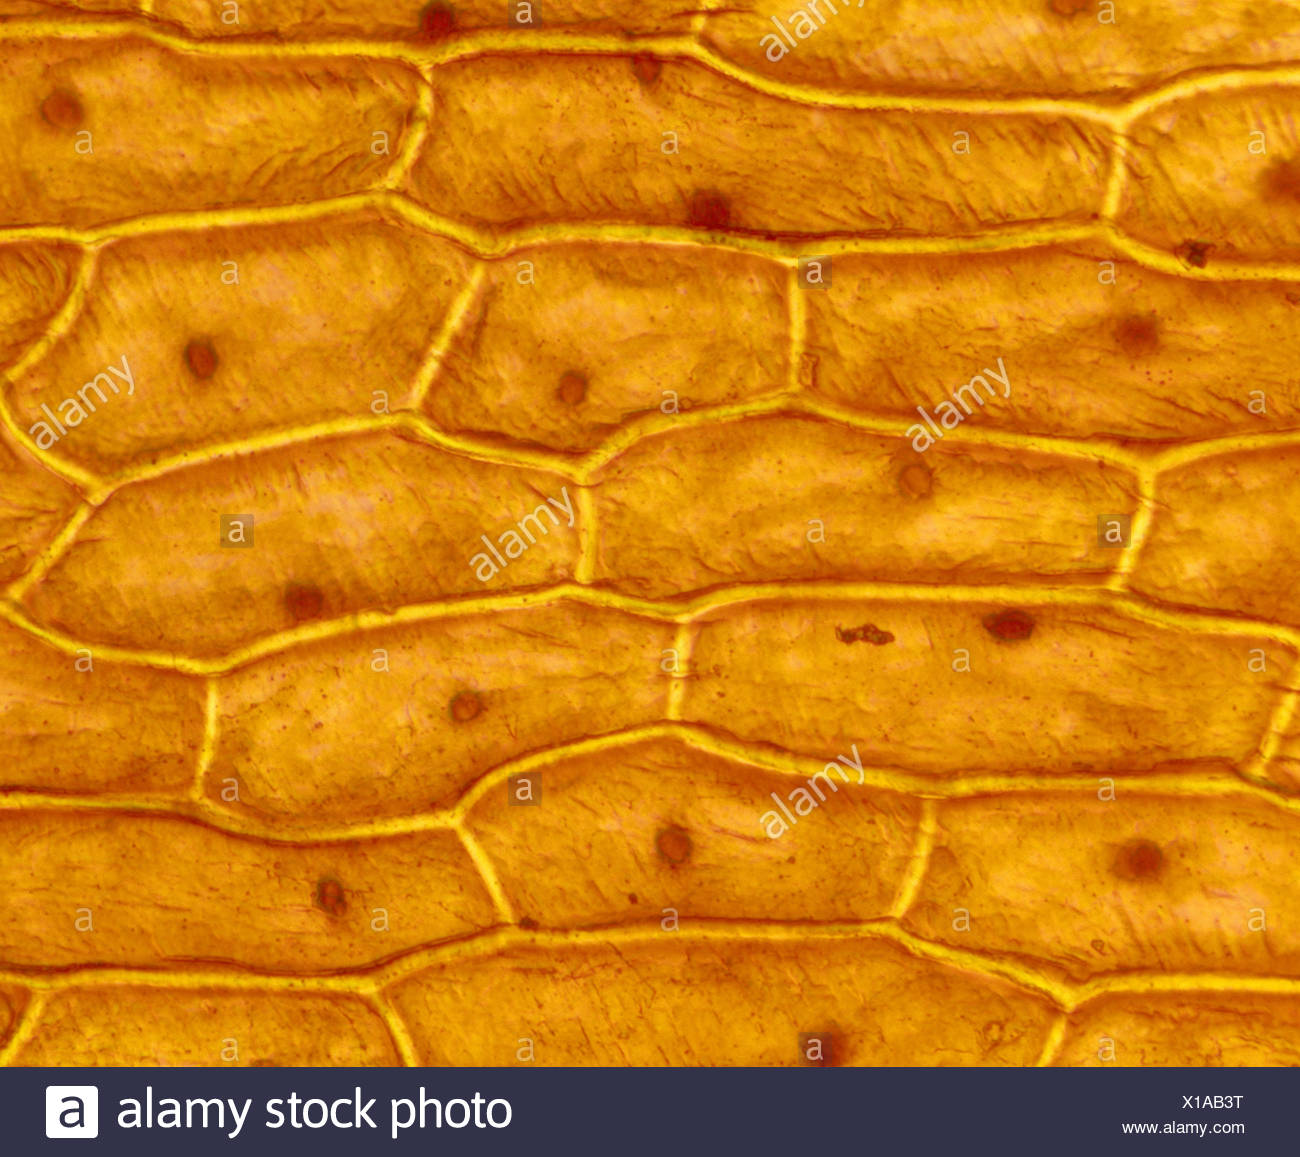 onion cell diagram vivint thermostat wiring cells stock photos and images alamy